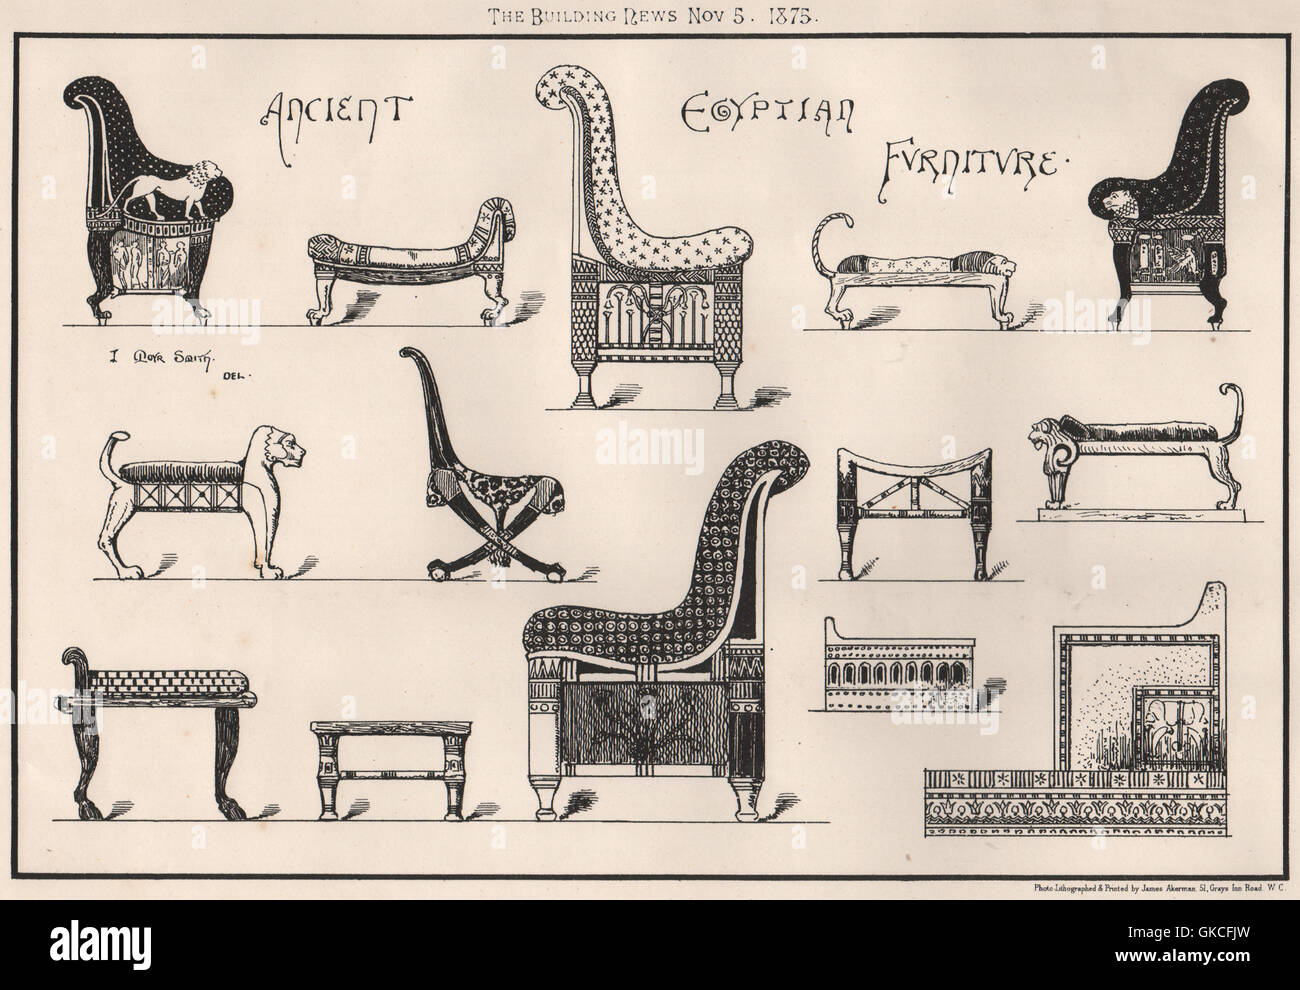 Ancient egyptian furniture - Ancient Egyptian Furniture Antique Print 1875